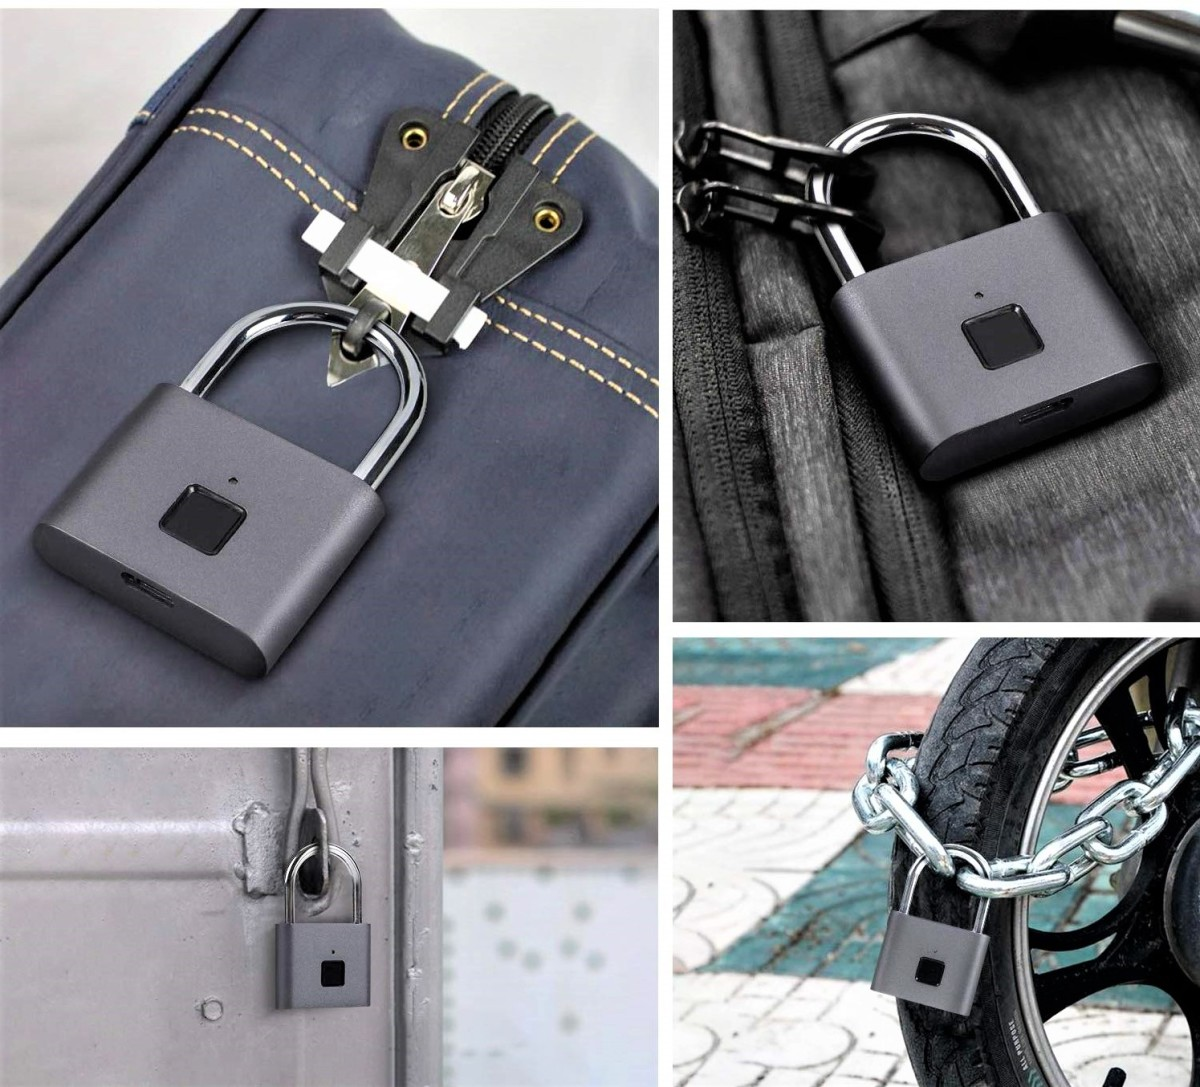 taococo-fingerprint-padlock-review-the-best-smart-keyless-security-lock